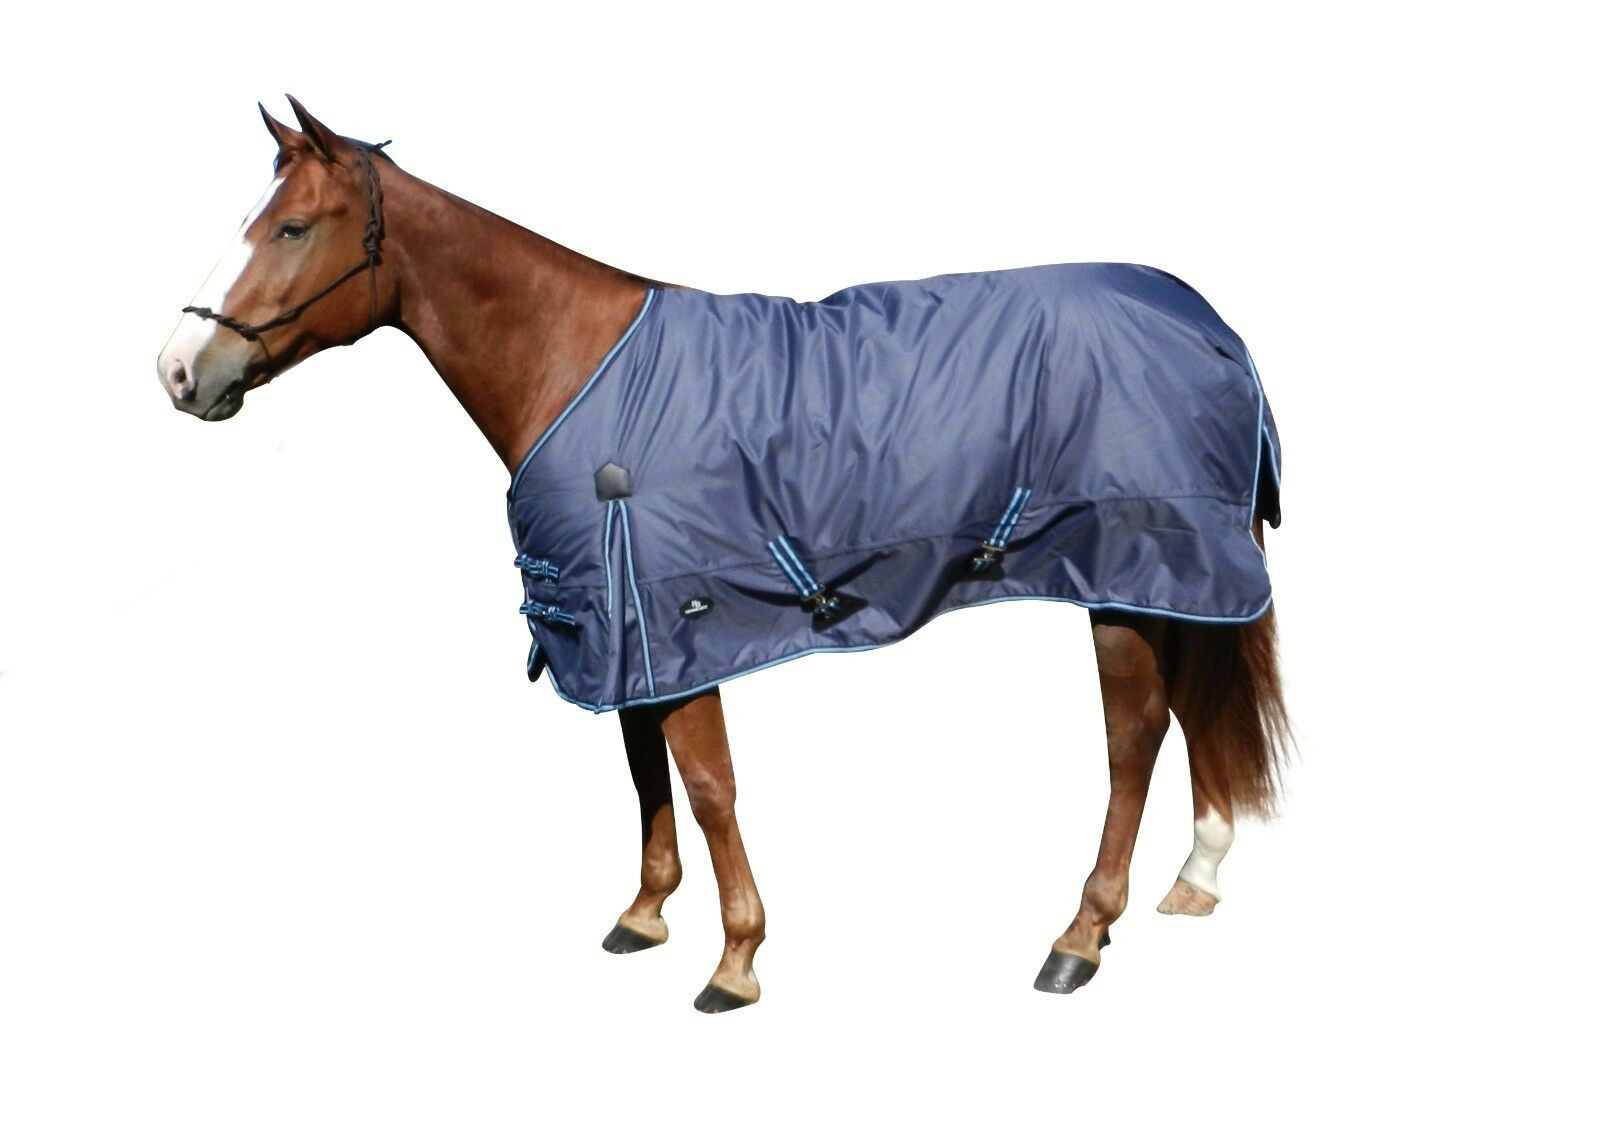 Neu Waterproof Turnout Horse Blanket 78